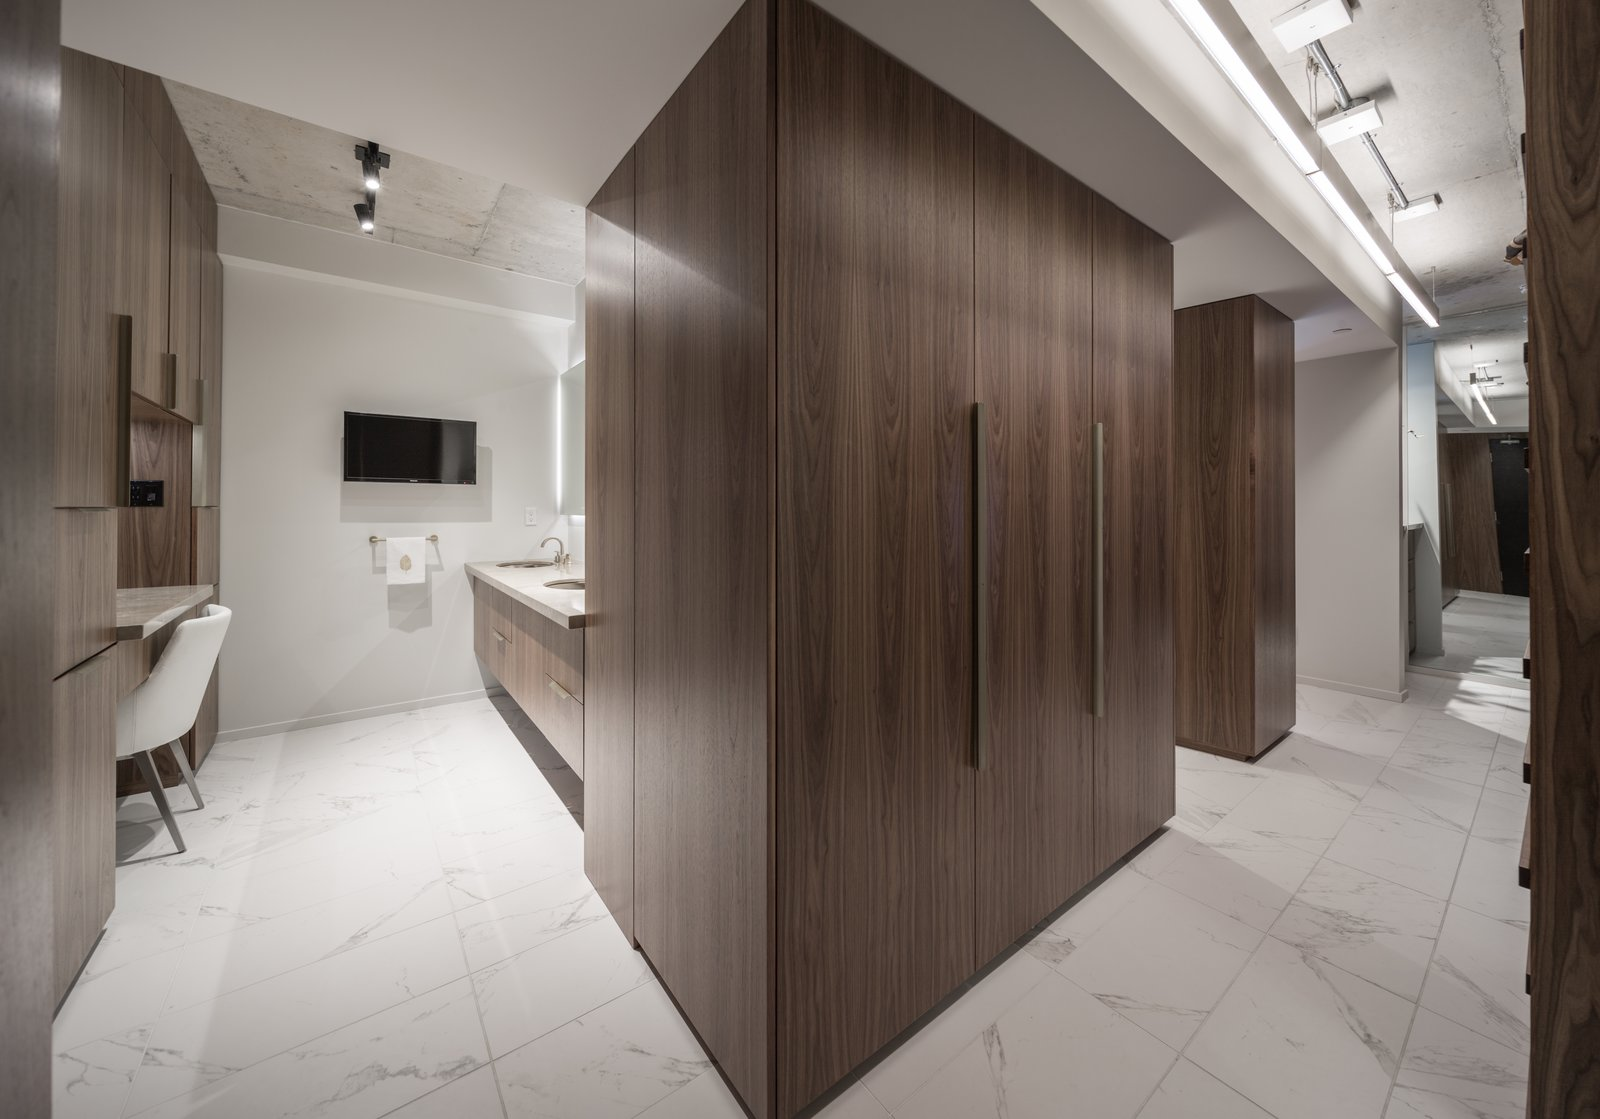 A new double vanity was added on an existing plumbing wall and a makeup counter was added opposite it.  Thompson Hotel Private Suite by ANTHONY PROVENZANO ARCHITECTS